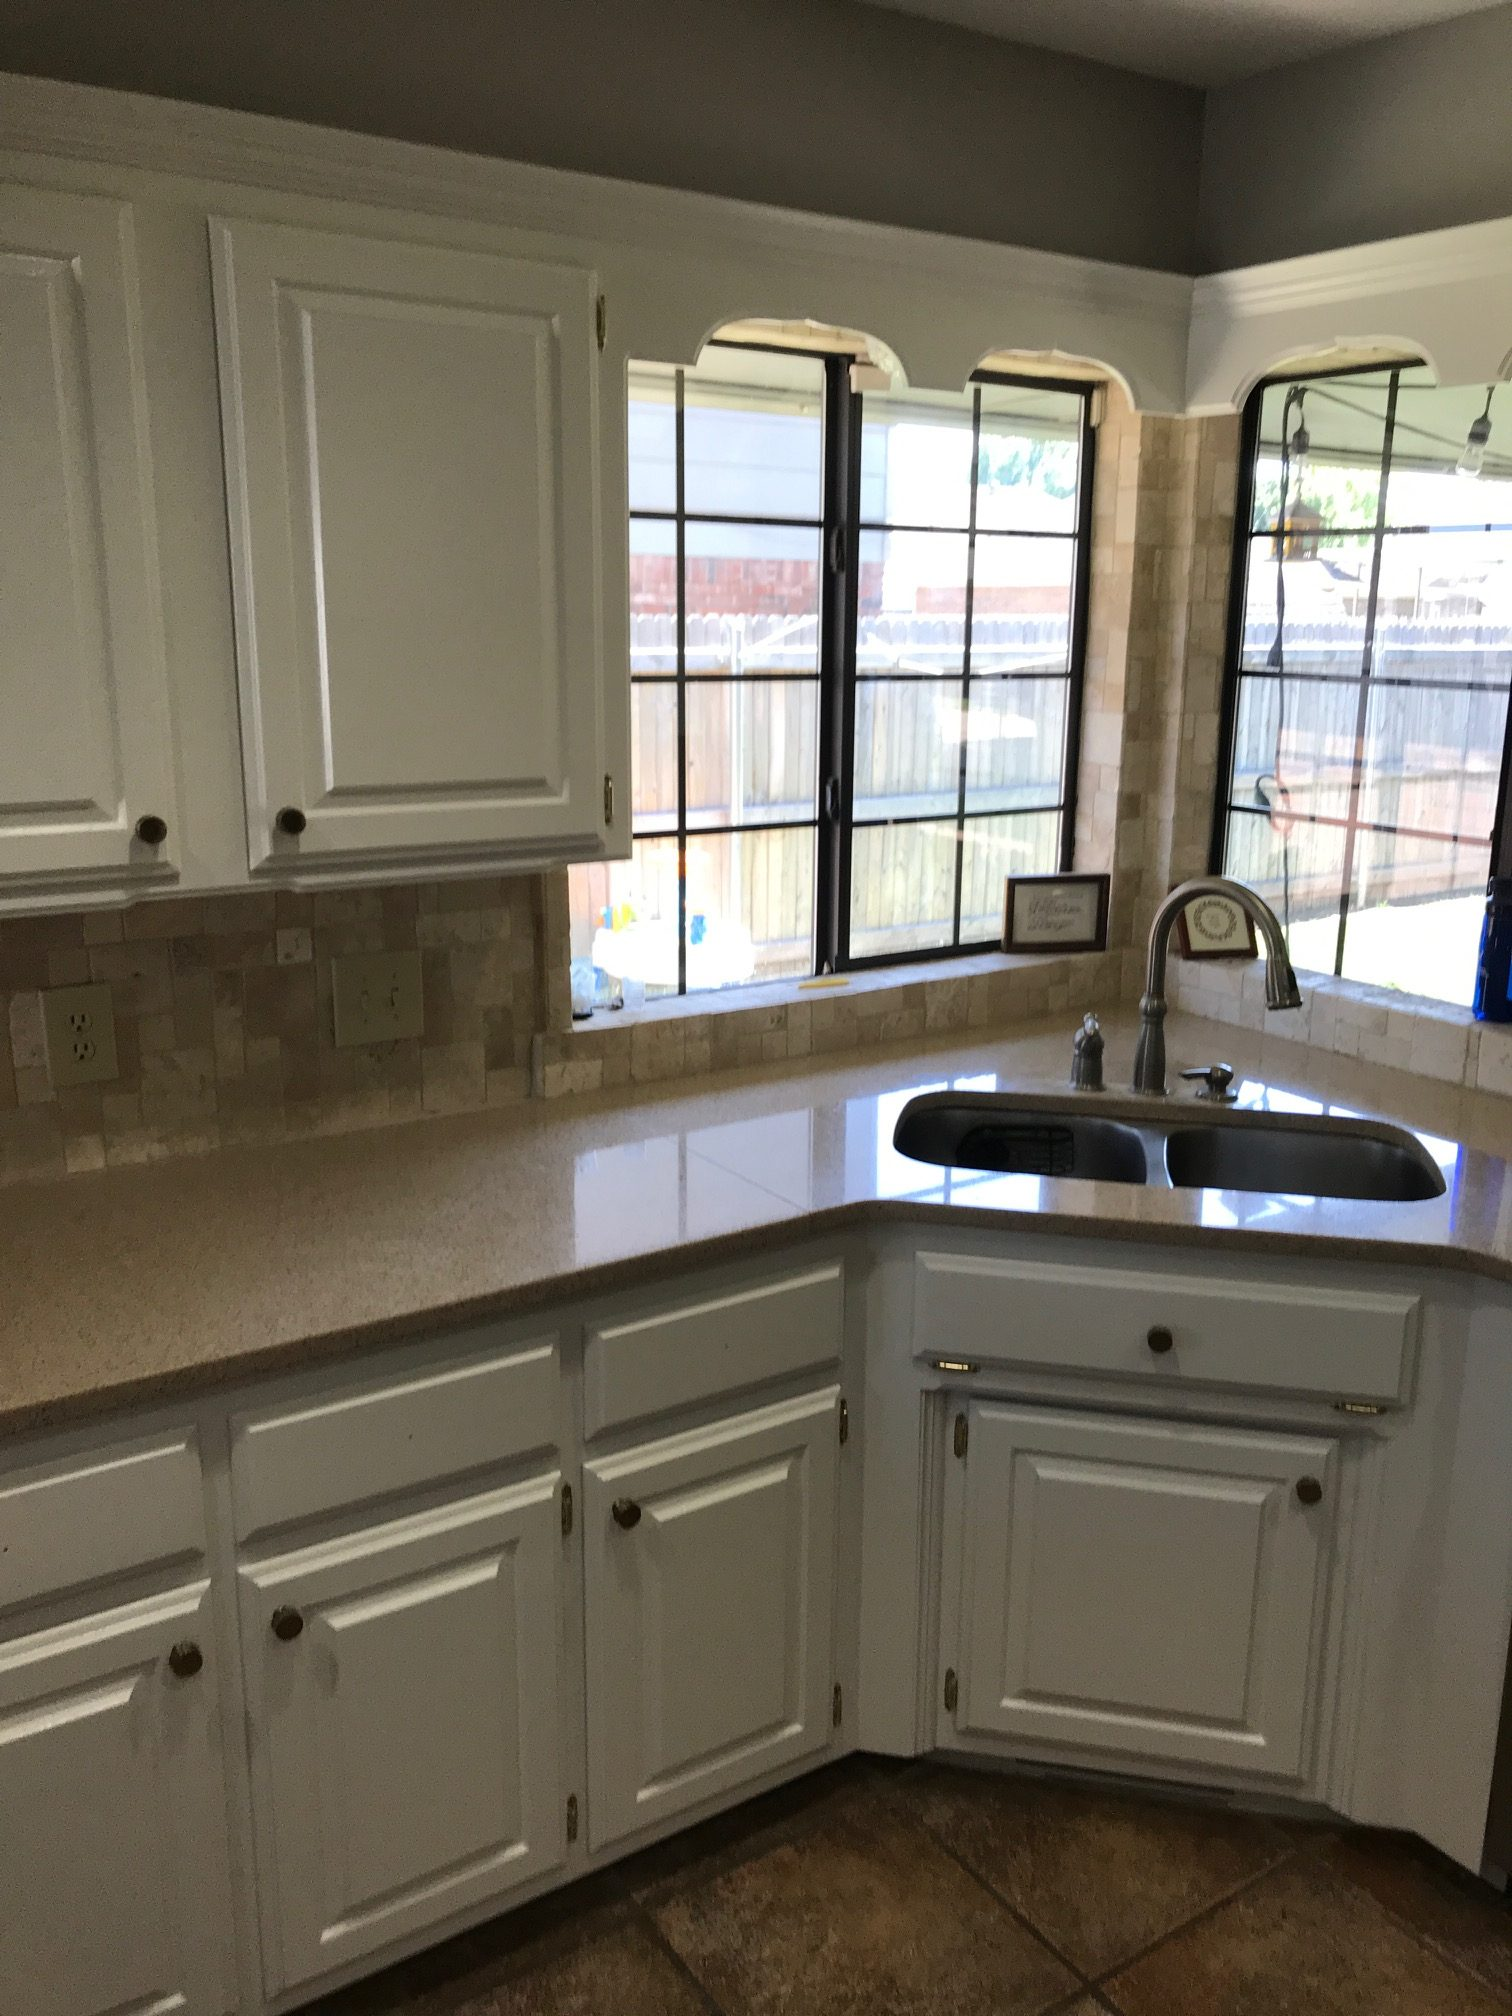 Kitchen Remodel completed by our Edmond Kitchen Remodeling Team.